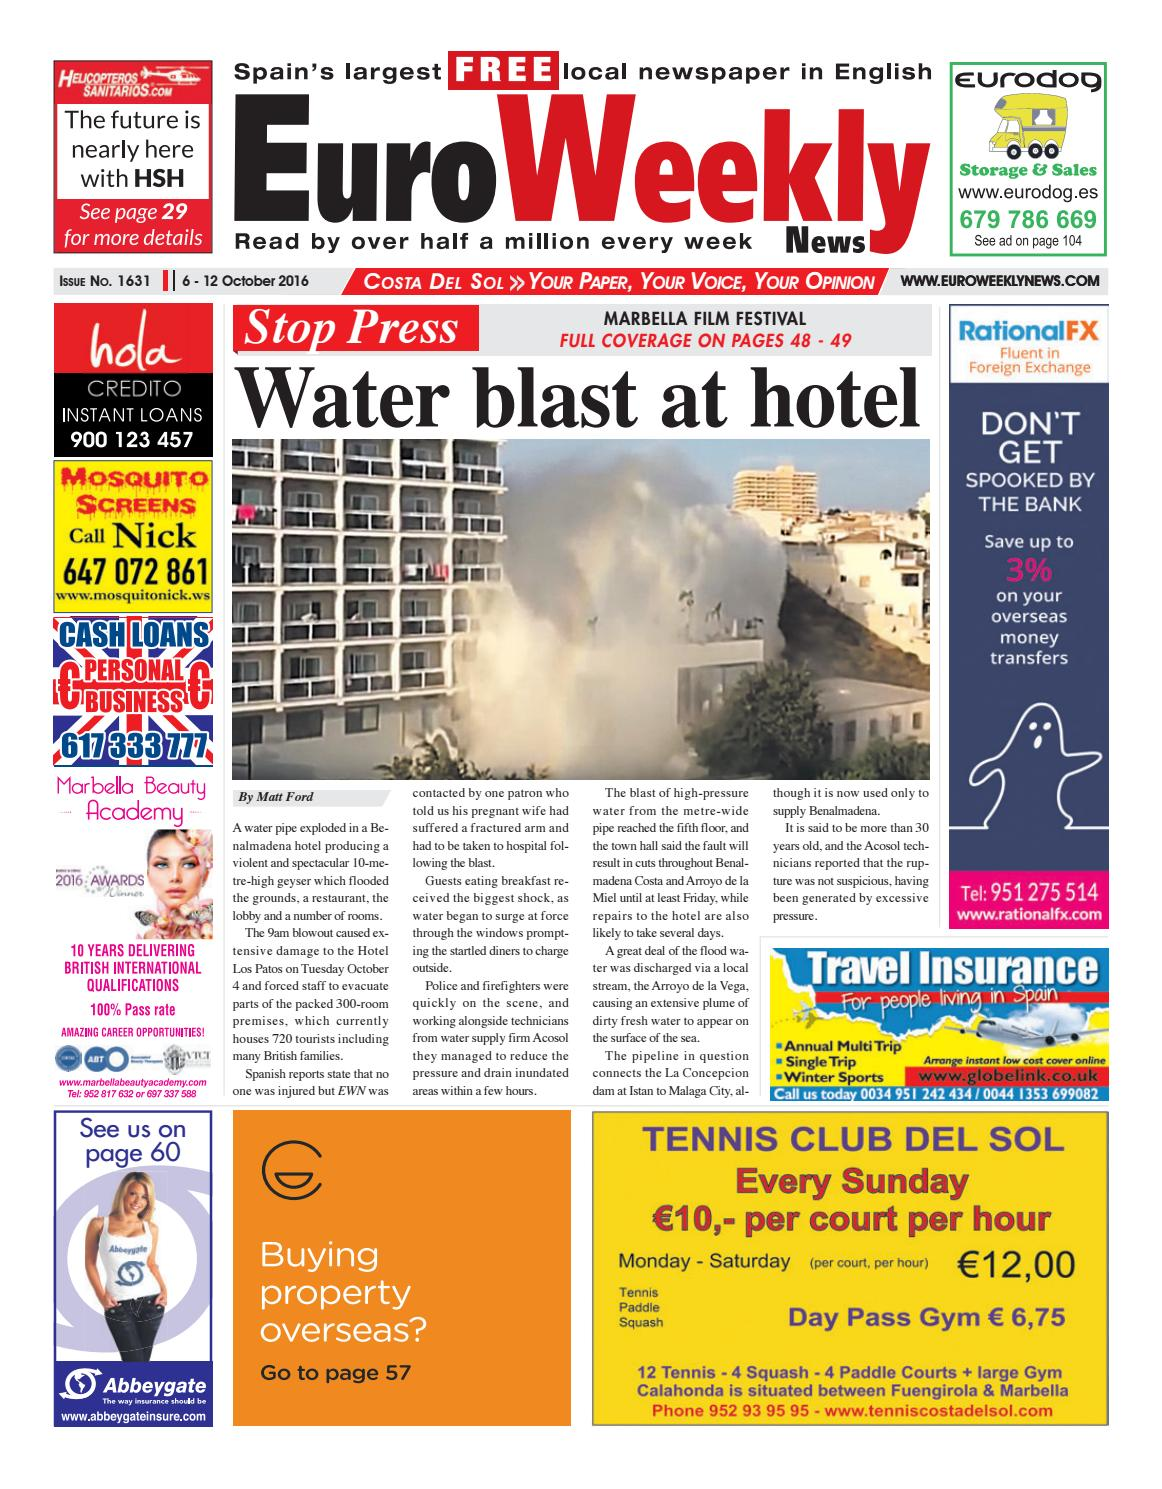 Euro weekly news costa del sol 6 12 october 2016 issue 1631 by euro weekly news costa del sol 6 12 october 2016 issue 1631 by euro weekly news media sa issuu fandeluxe Image collections